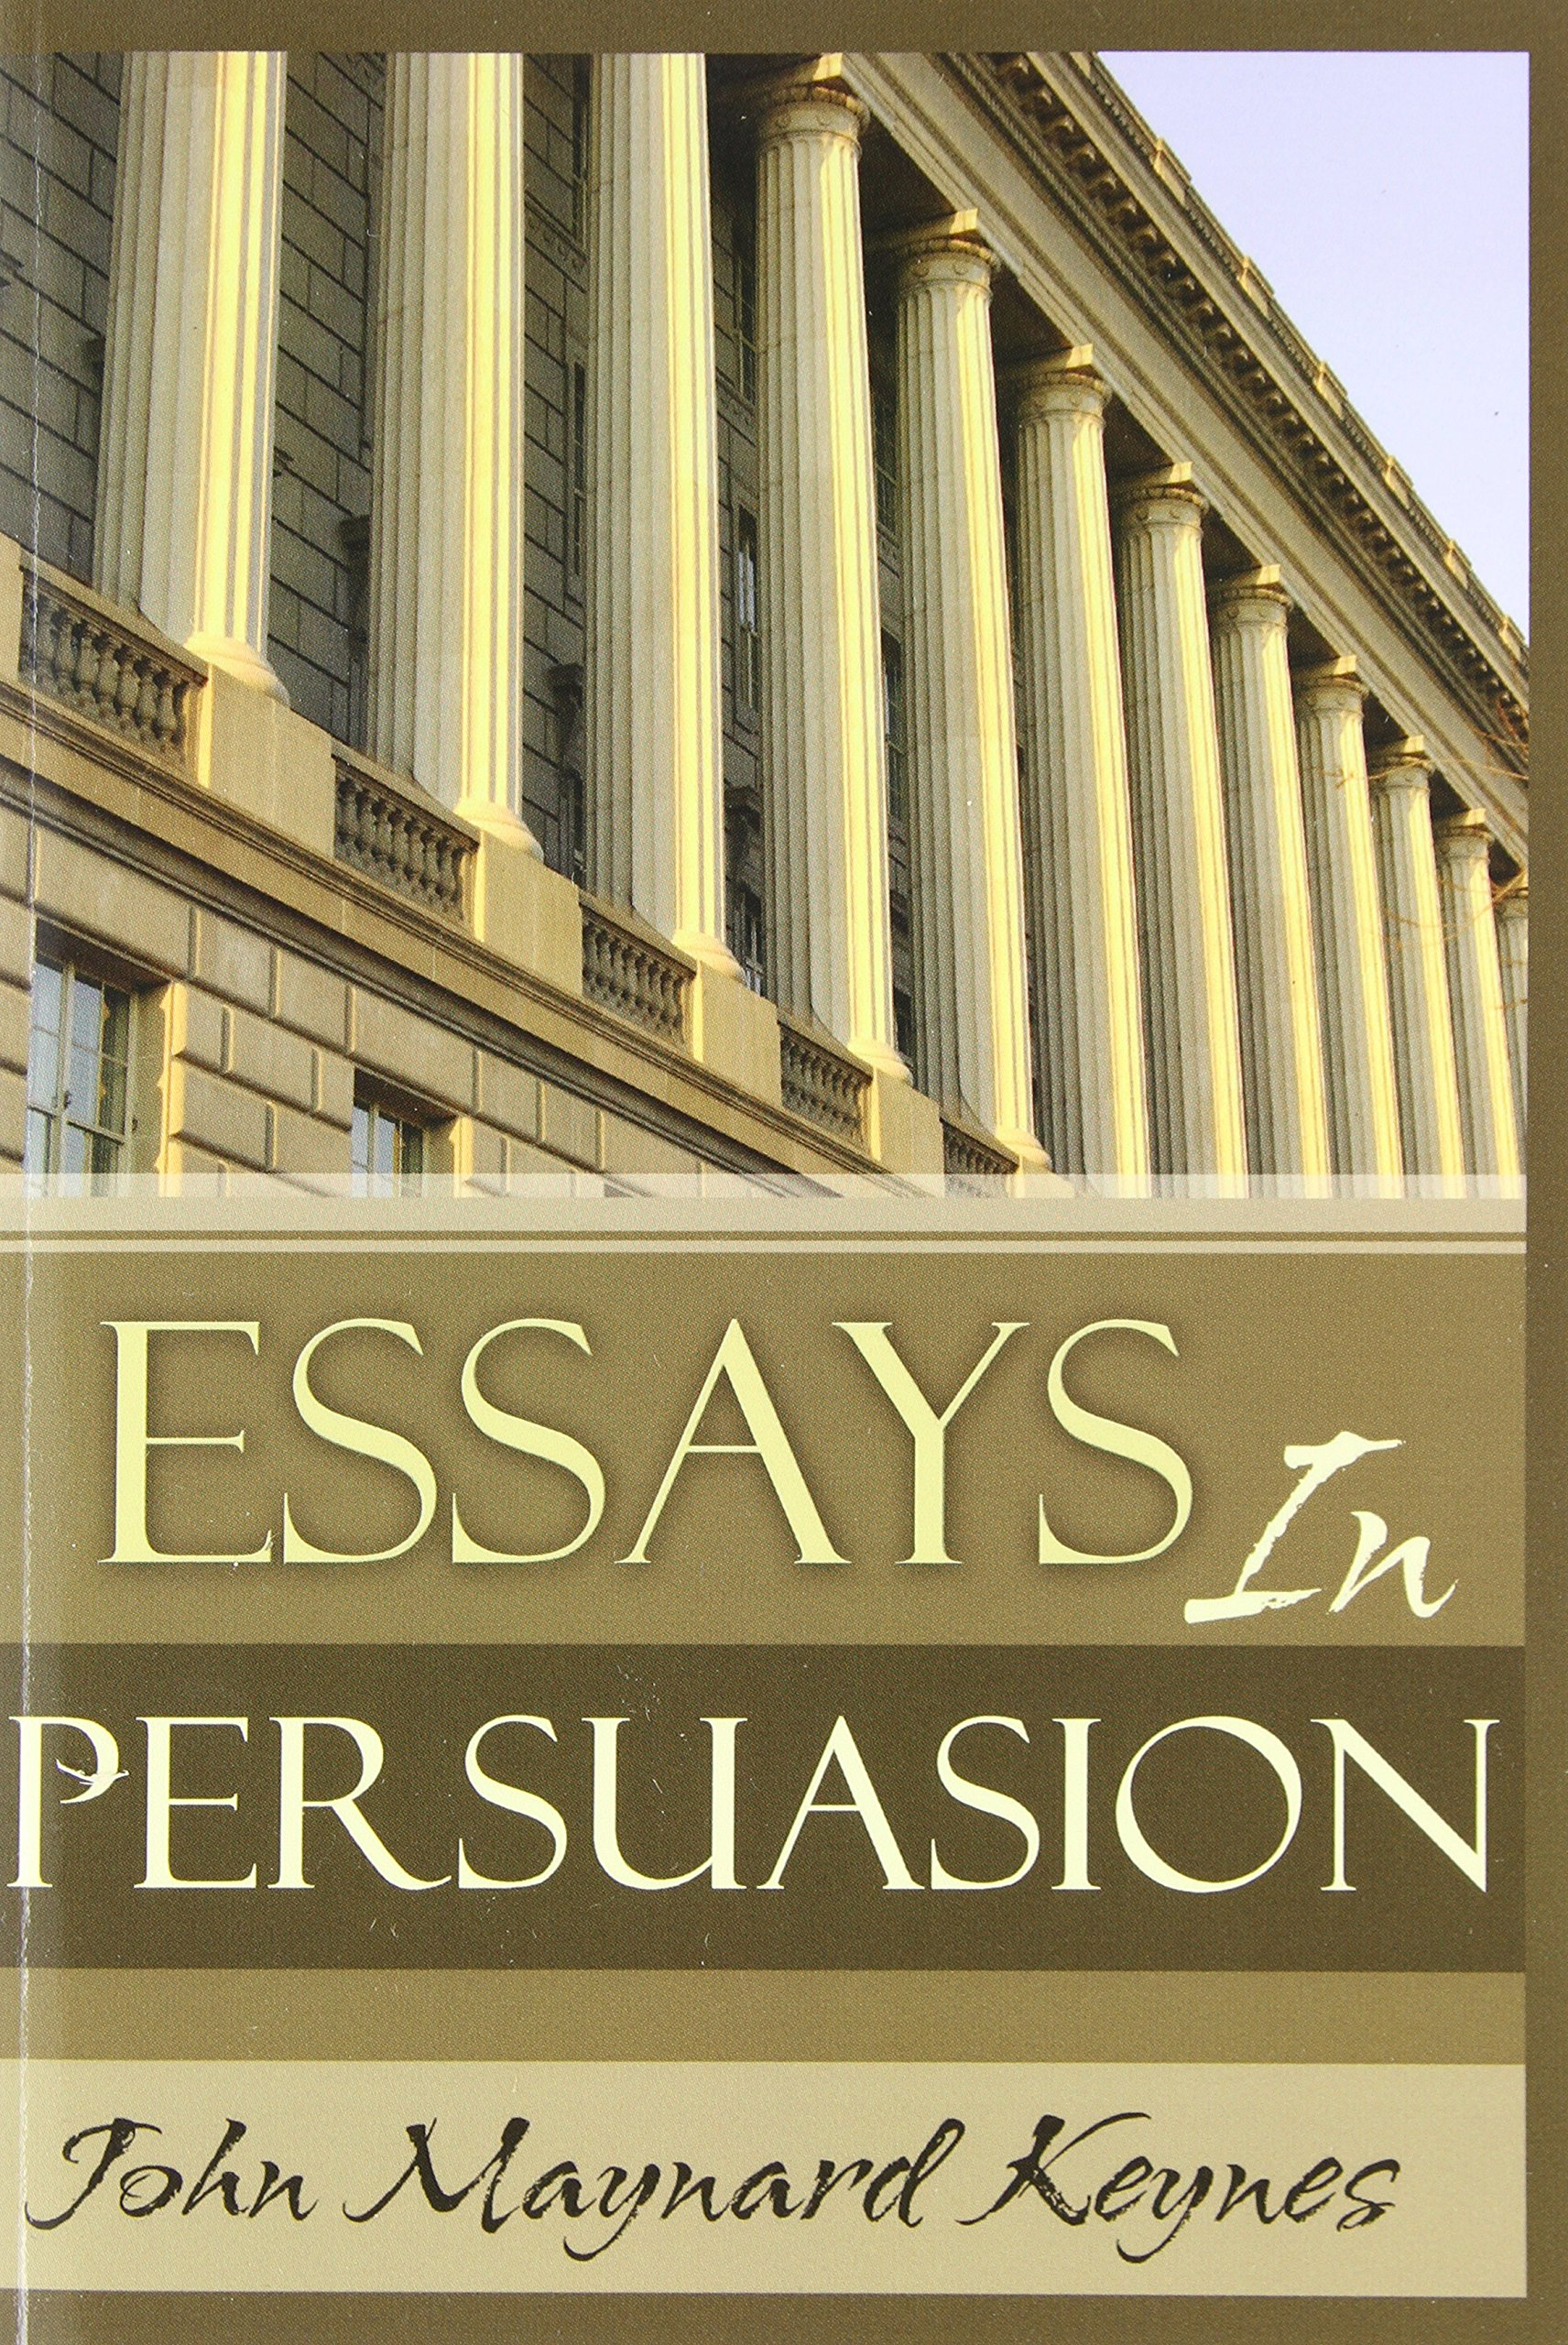 Essays In Persuasion: John Maynard Keynes: 9781441492265: Amazon ...